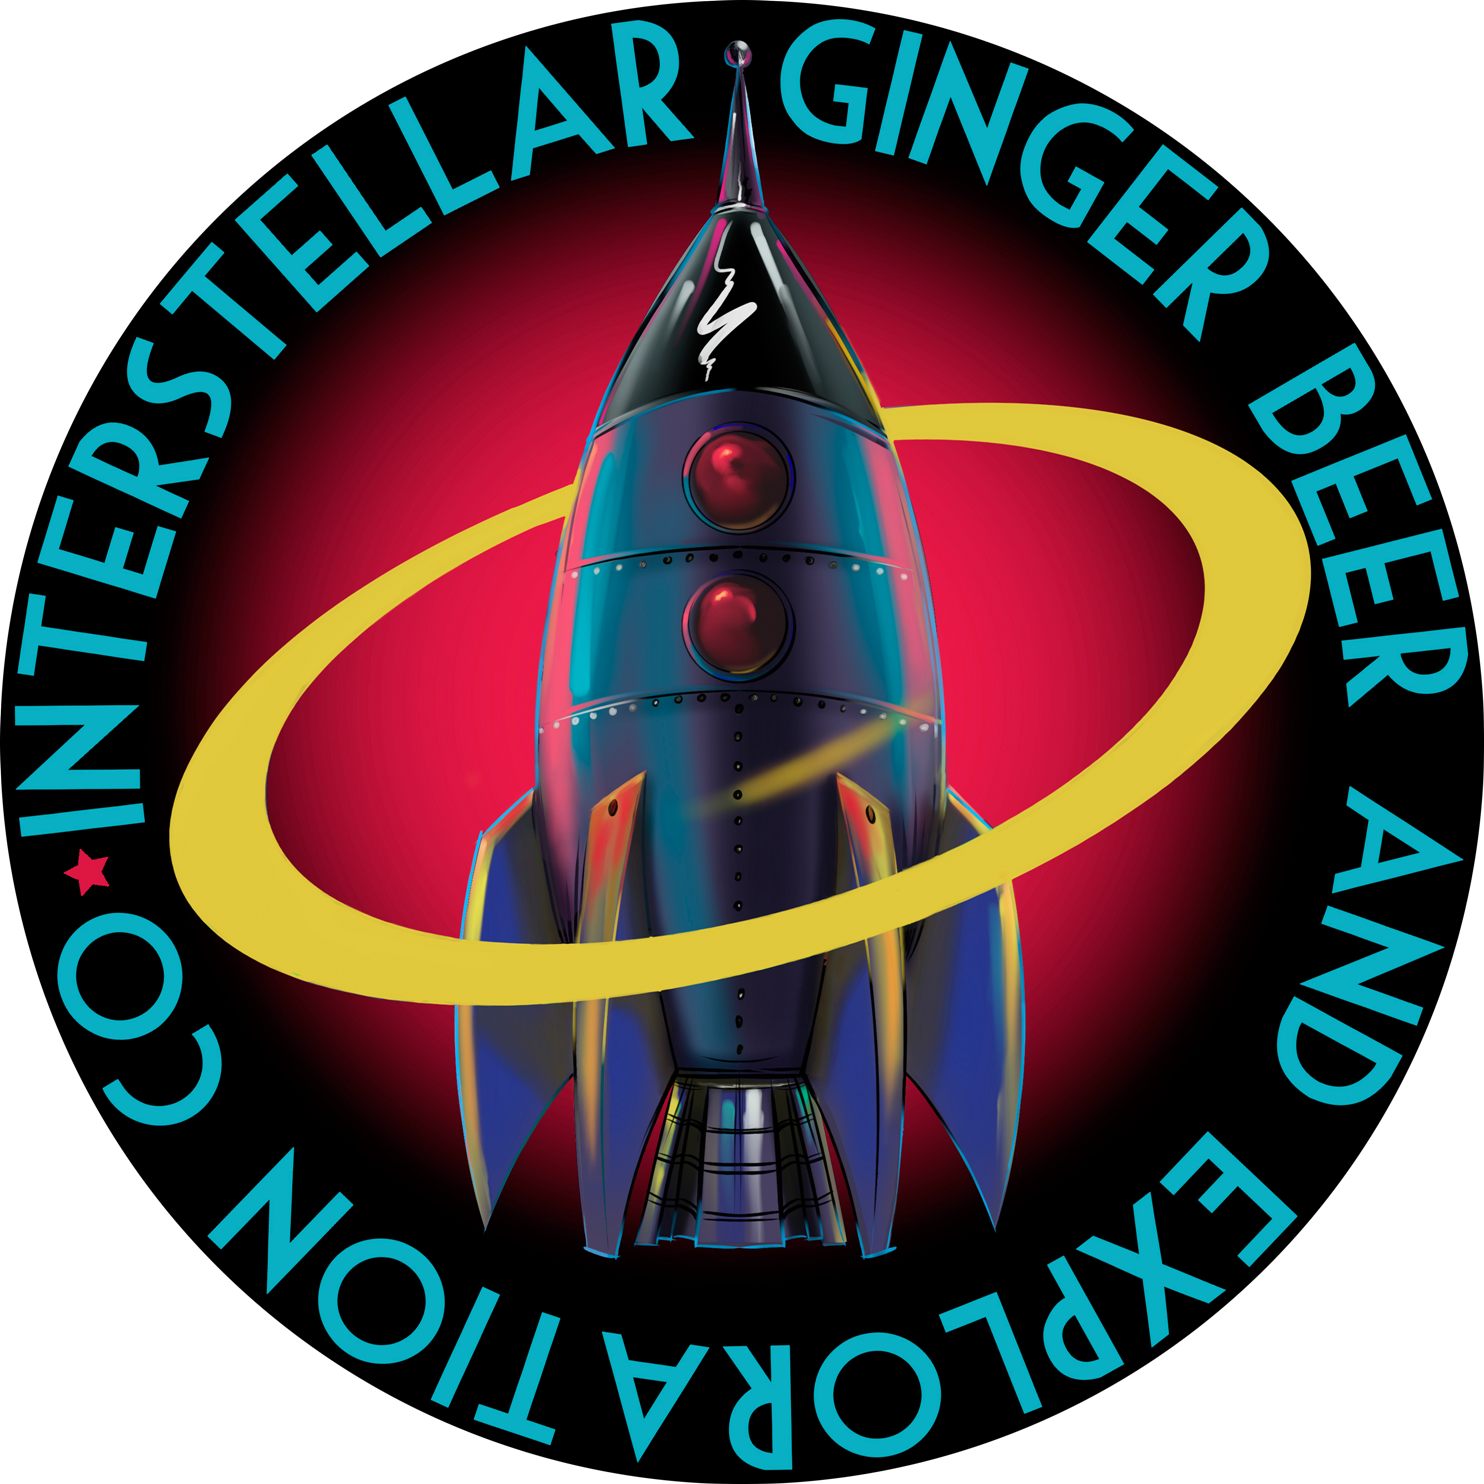 Interstellar Ginger Beer and Exploration Company